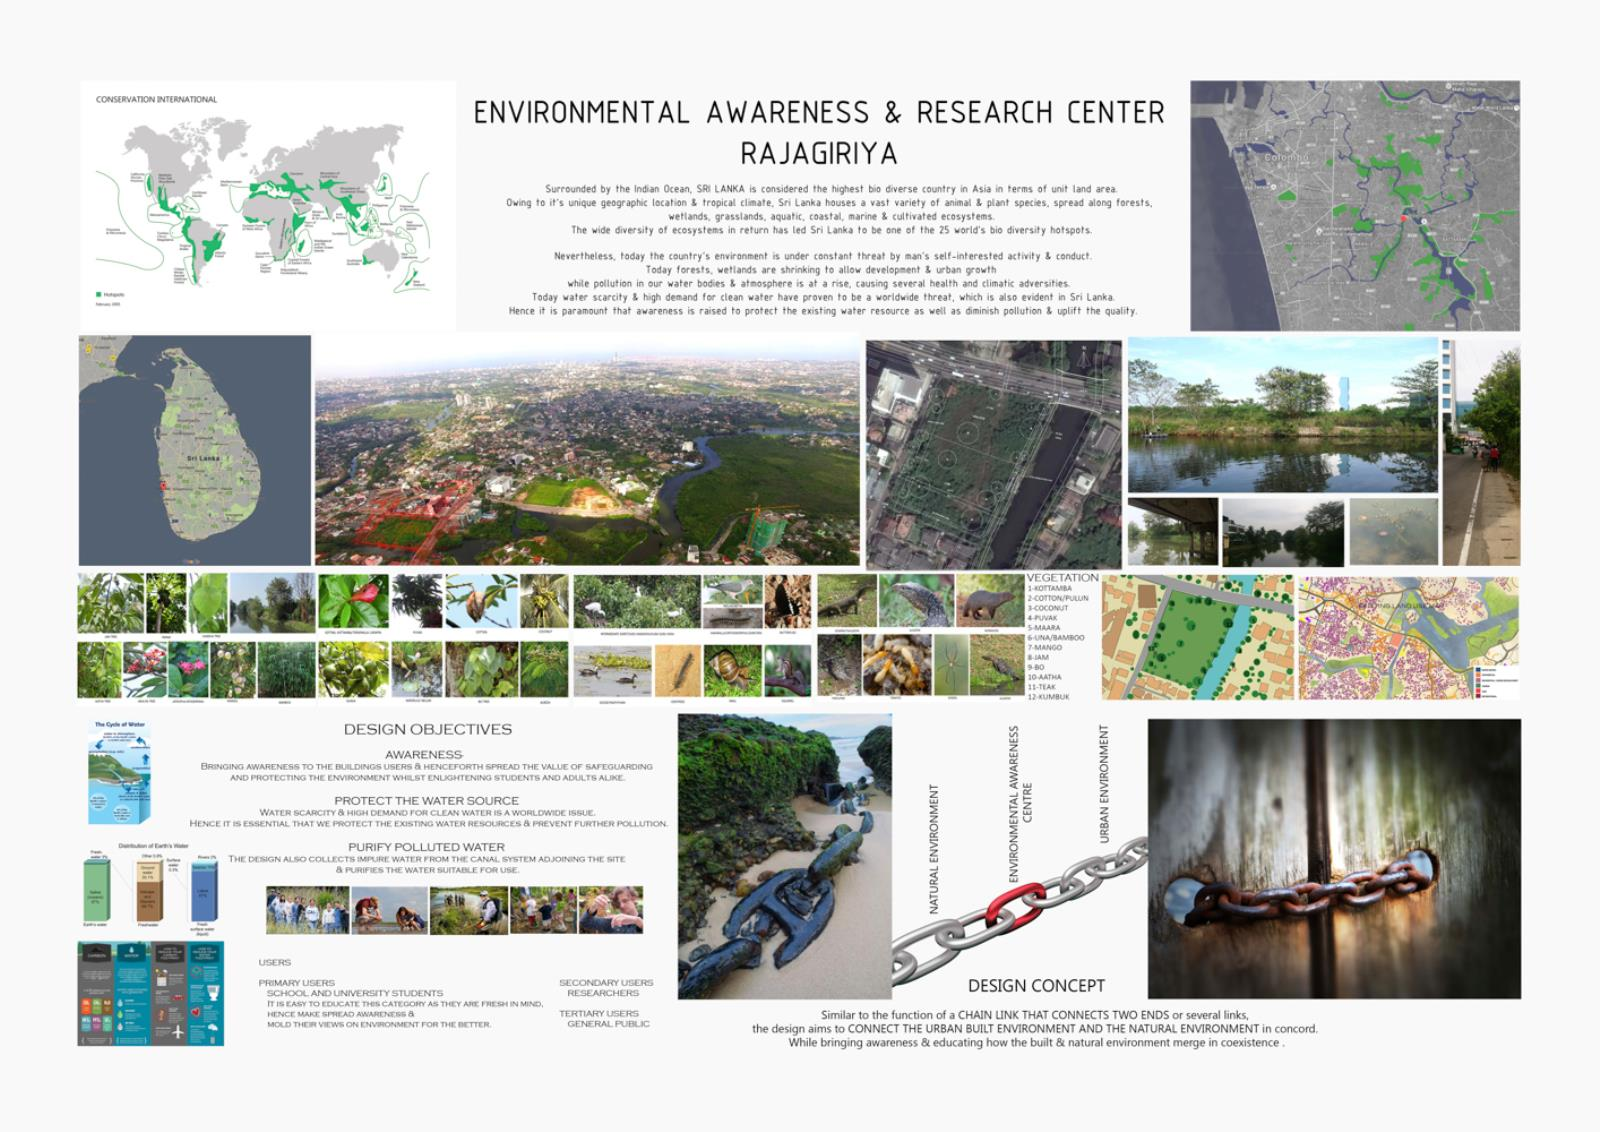 Comprehensive Design Project for  Envrionmental Awareness and Research Center in Rajagiriya